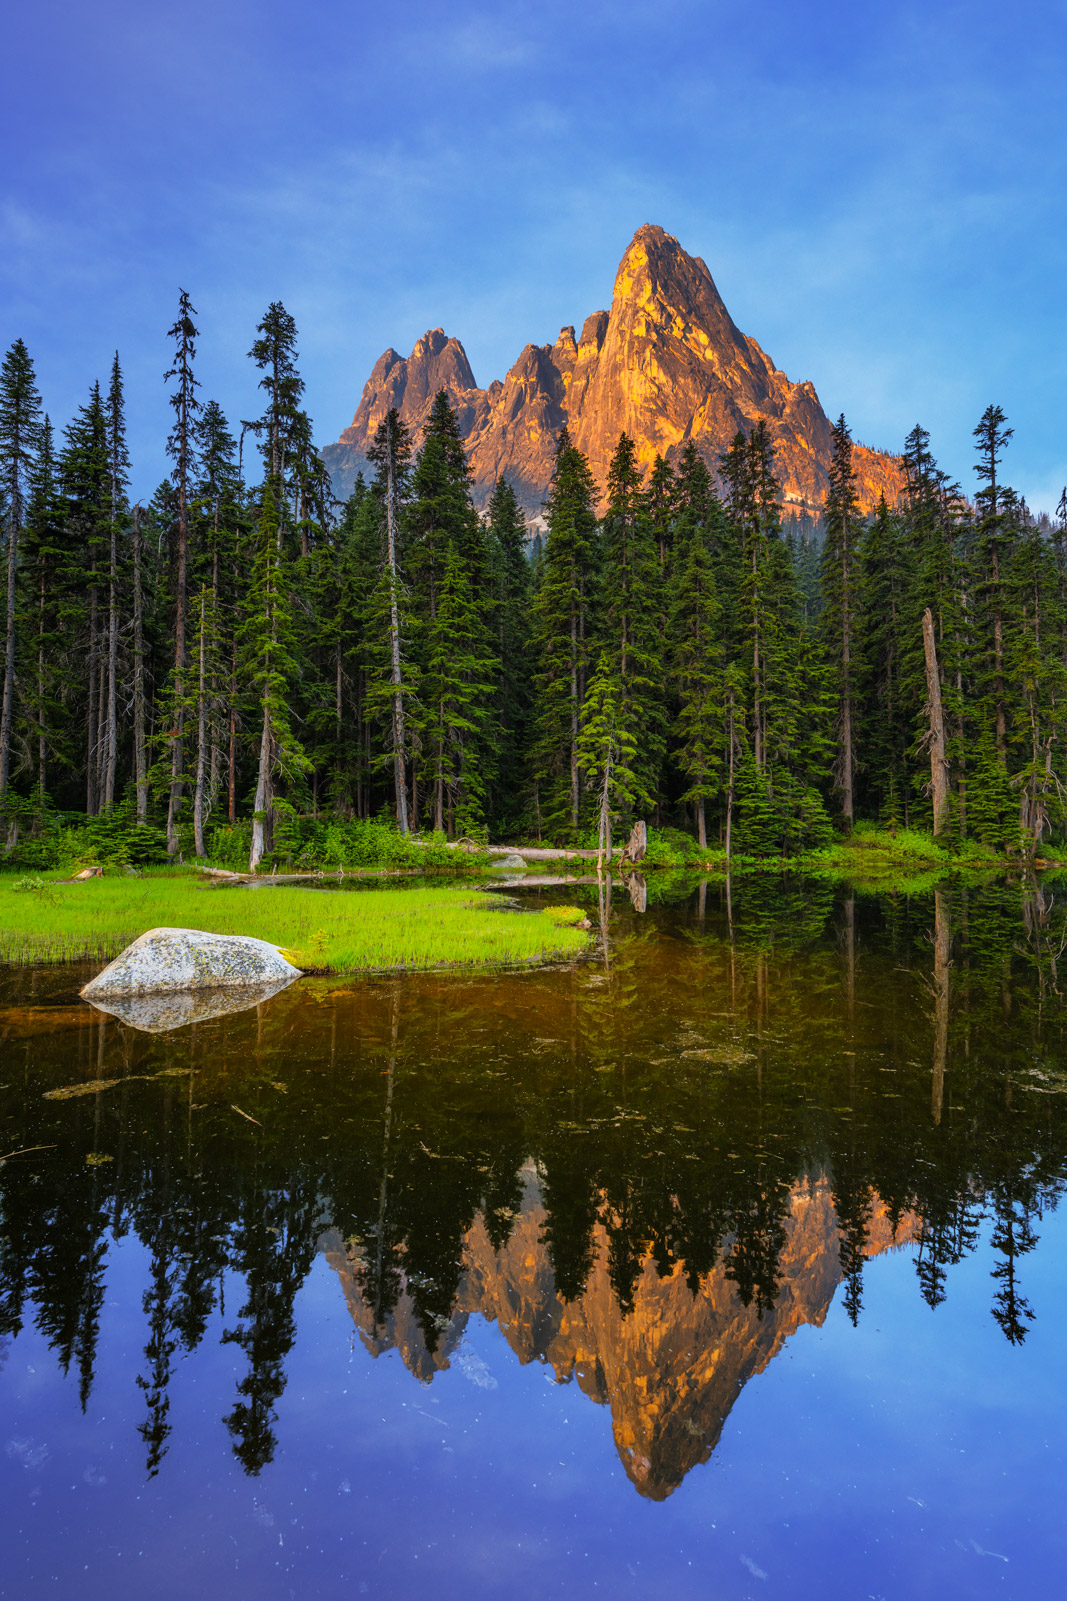 A Limited Edition, Fine Art photograph of a reflection of Liberty Bell Mountain in North Cascade National Park in Washington....